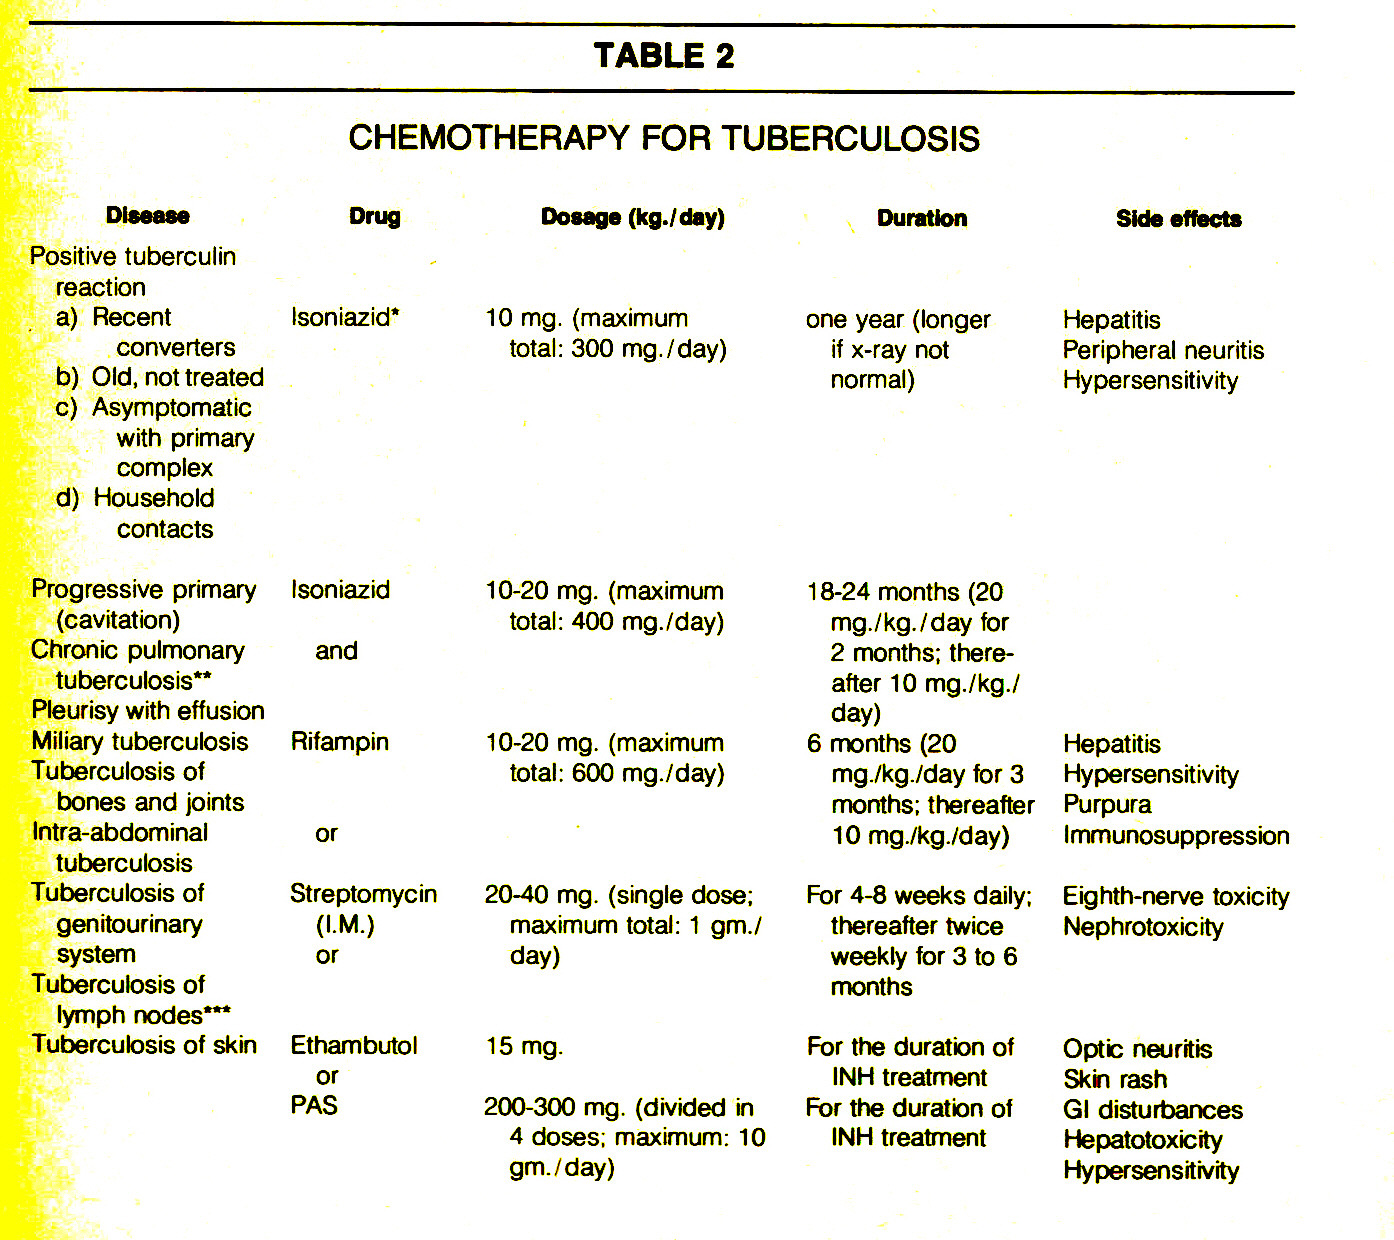 TABLE 2CHEMOTHERAPY FOR TUBERCULOSIS